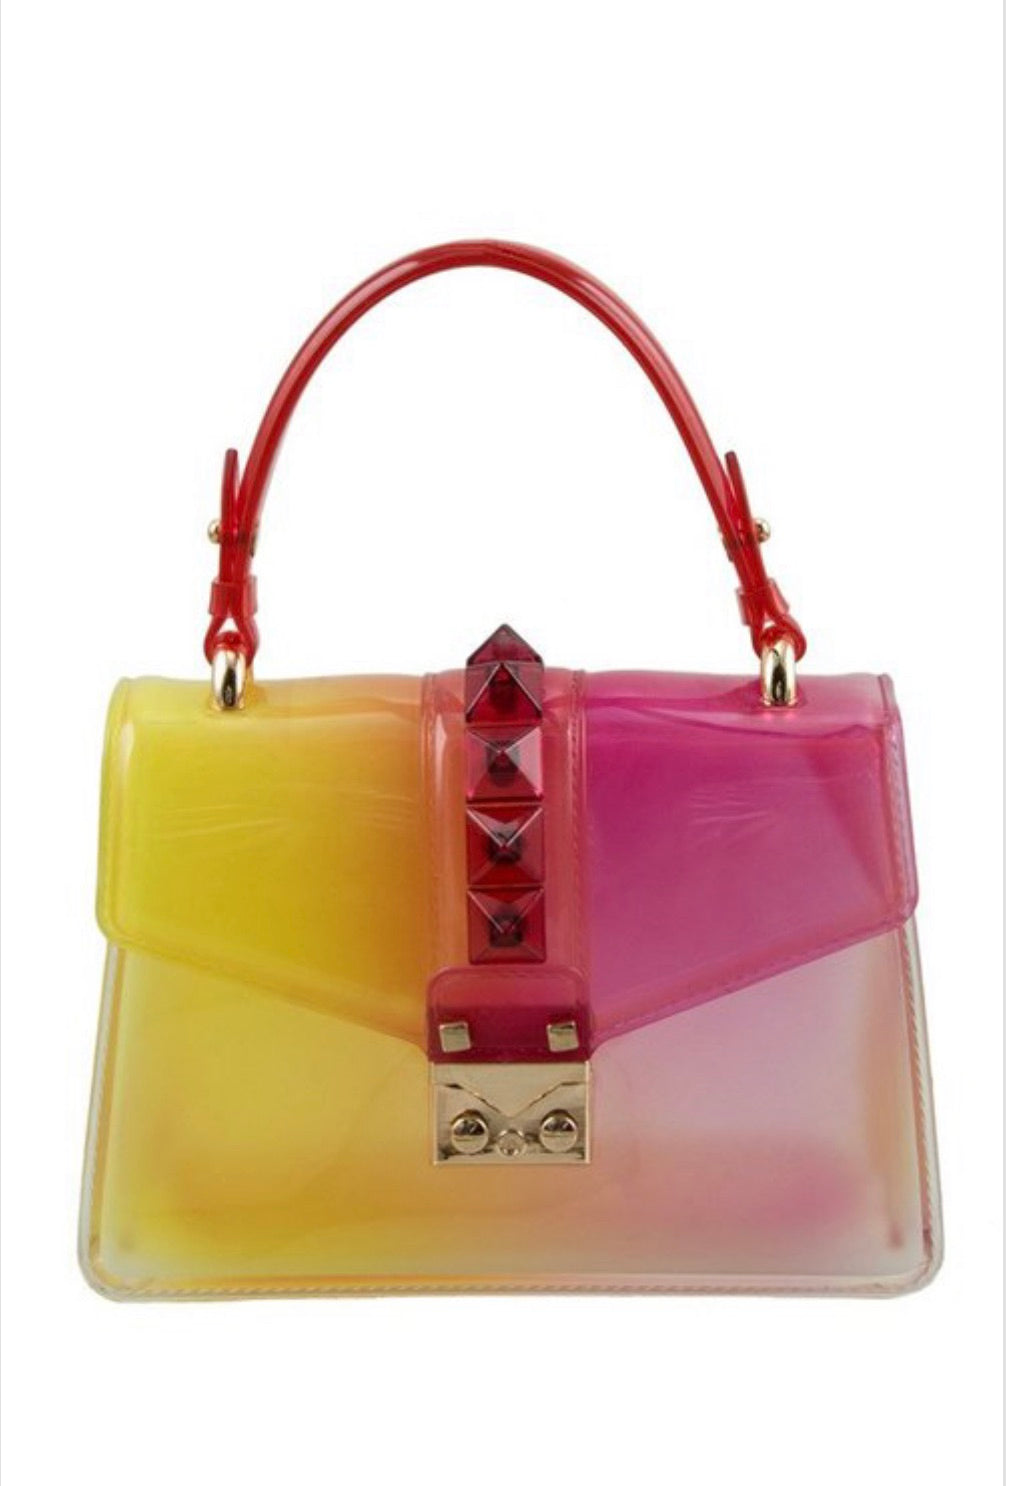 Jelly Bean Handbag (Pink and Yellow)